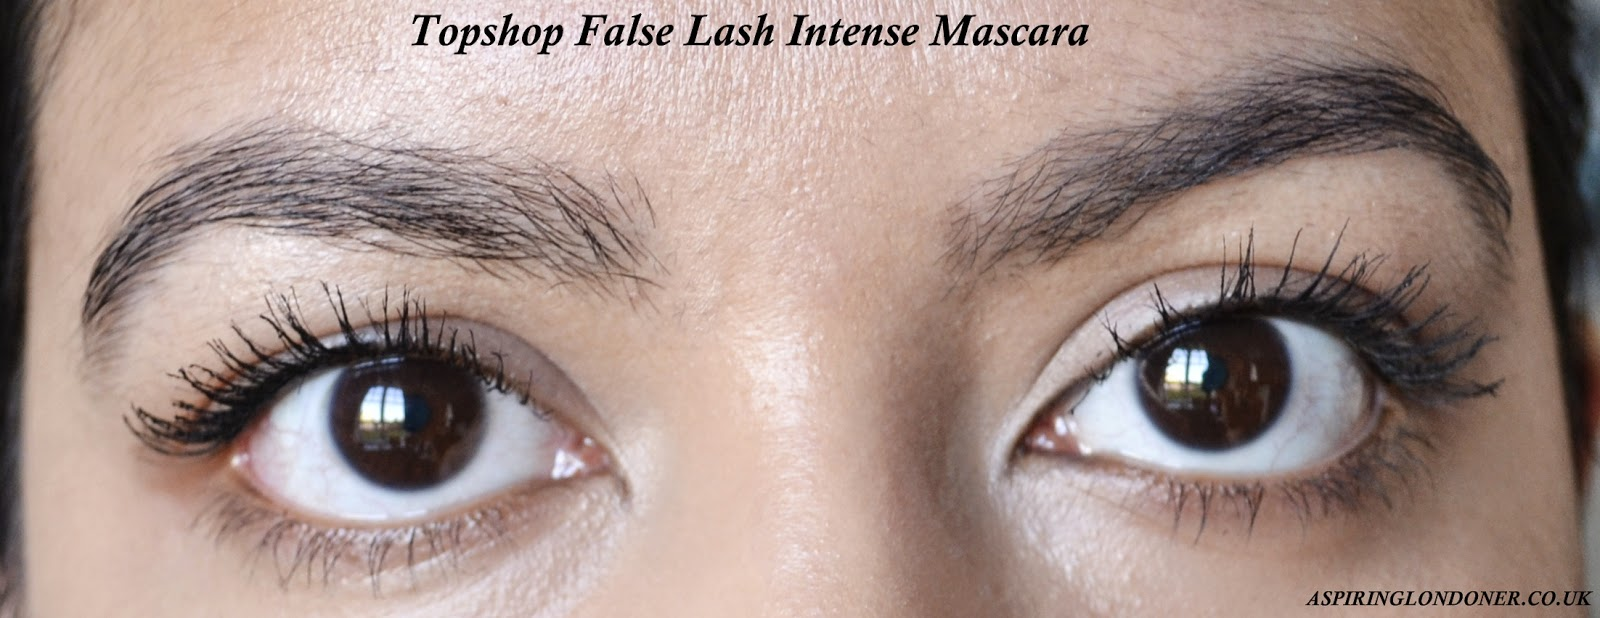 Topshop False Lash Intense Mascara Review & Swatch - Aspiring Londoner